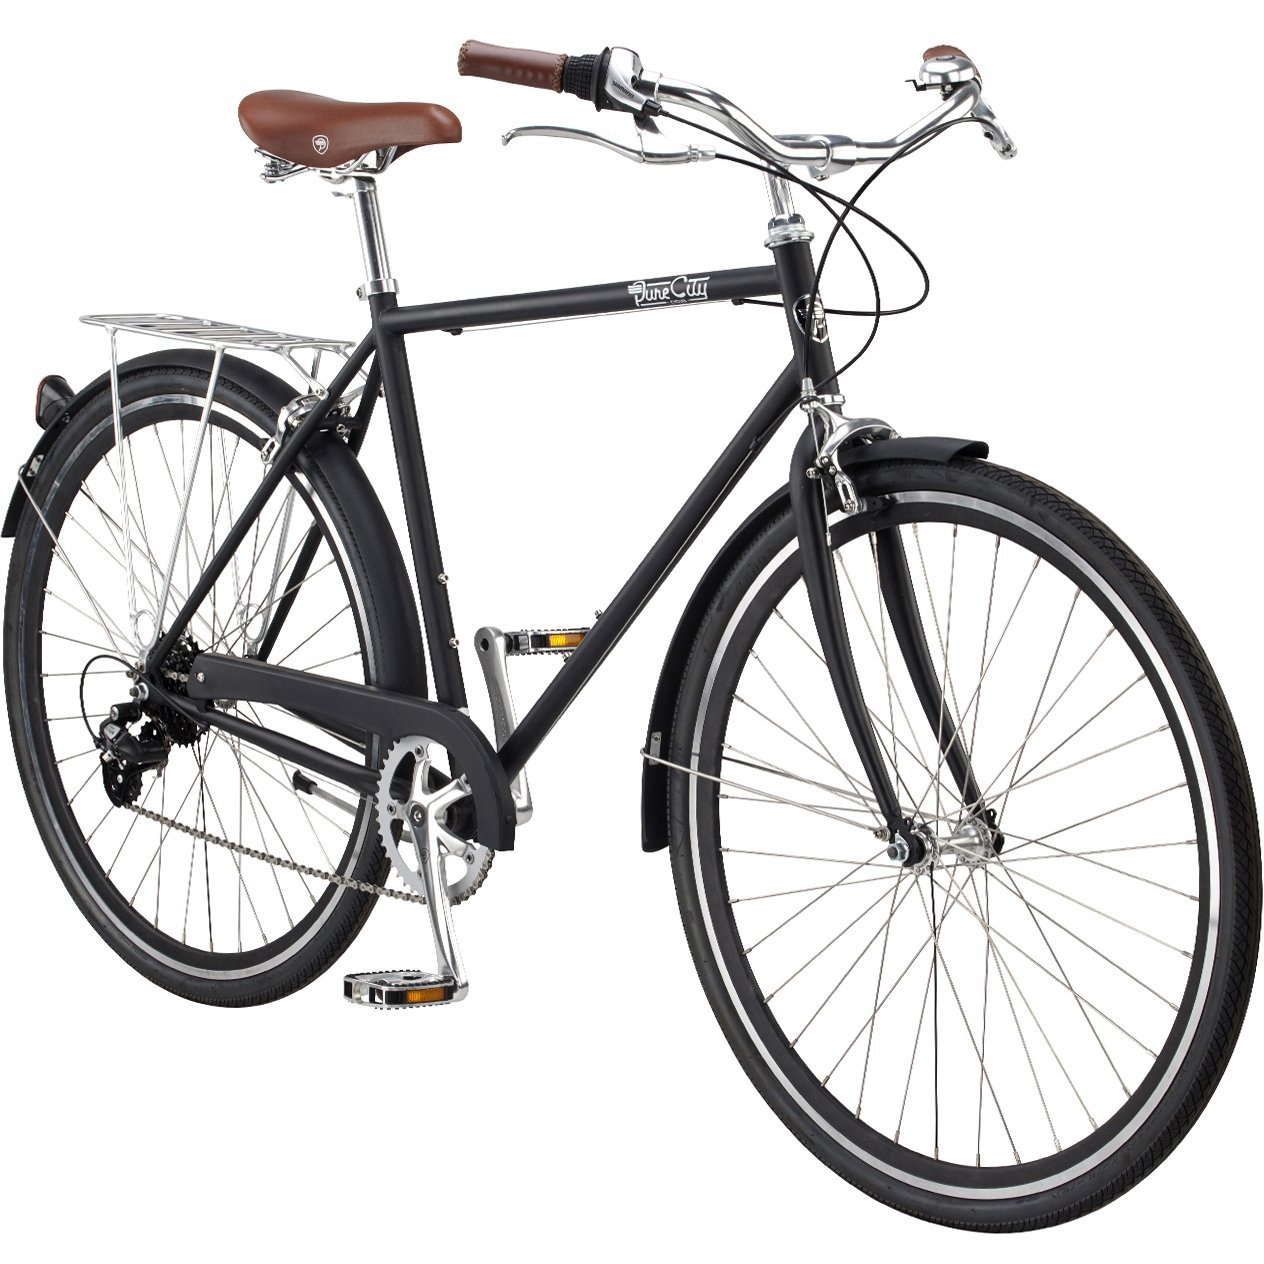 Pure City Classic Diamond Frame Bike